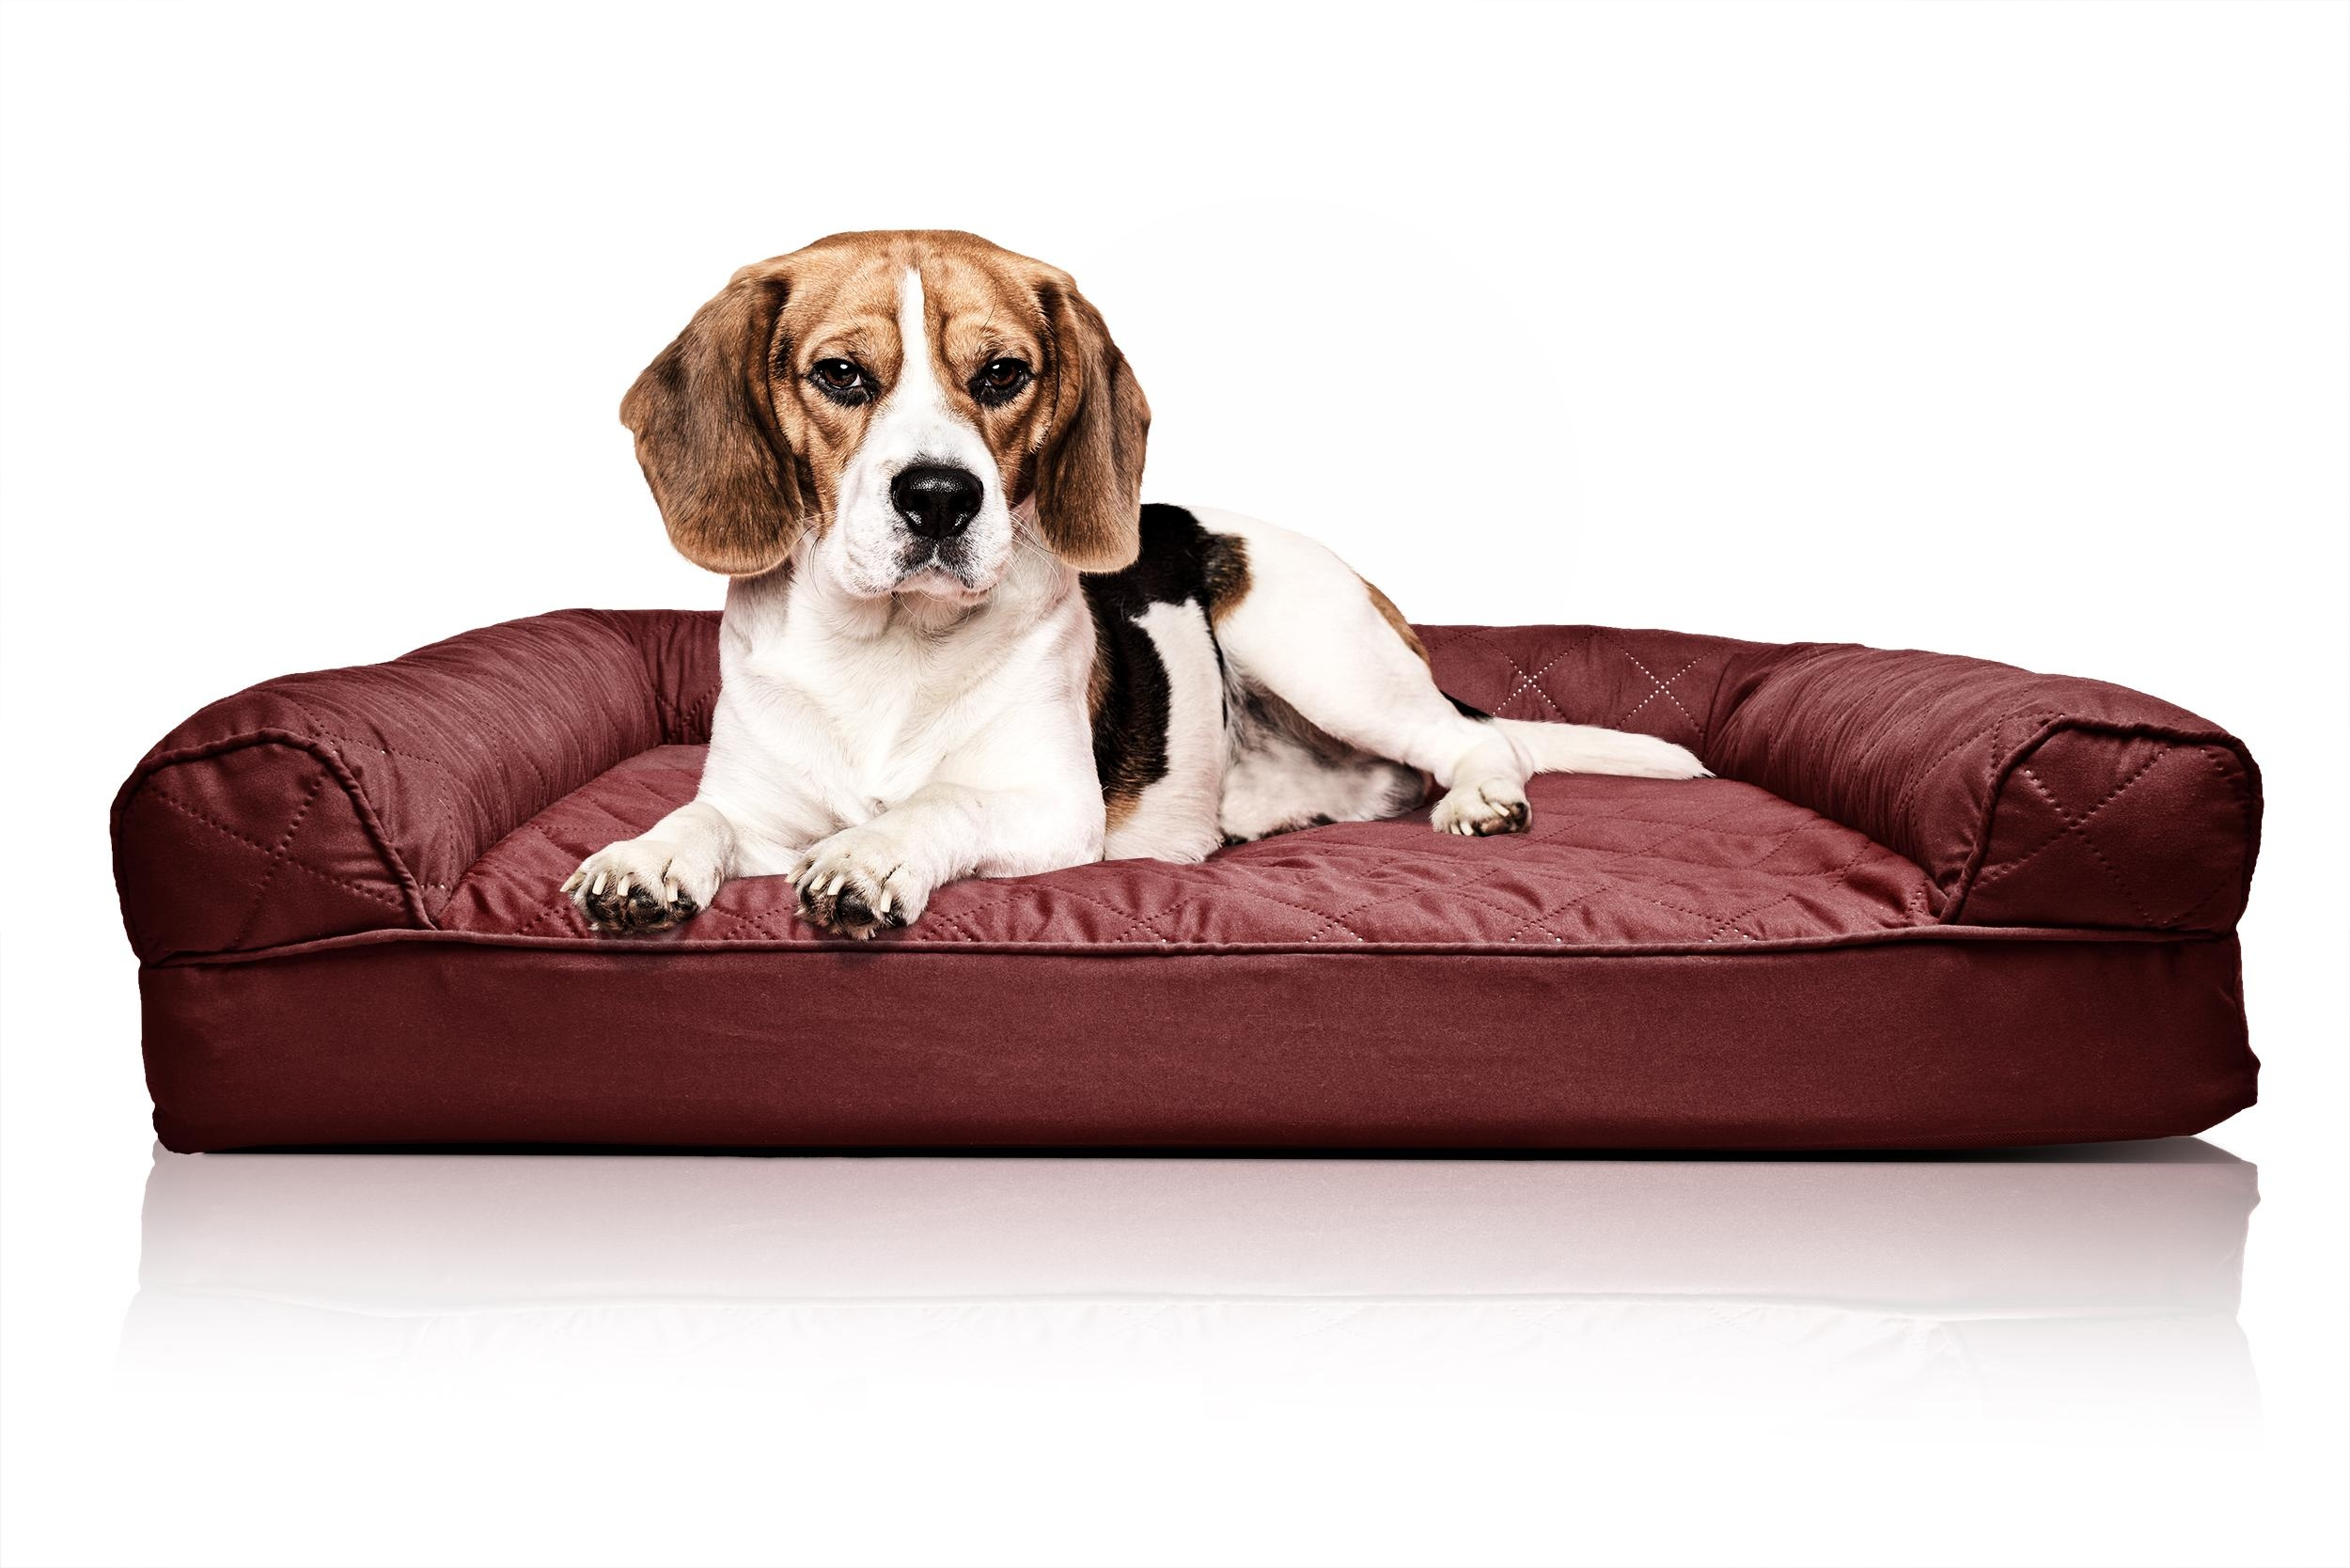 Sofas Center : Hot Dog Sofa Pet Bedluxury Best Beds X Bolster With Regard To Snoozer Luxury Dog Sofas (Image 17 of 20)